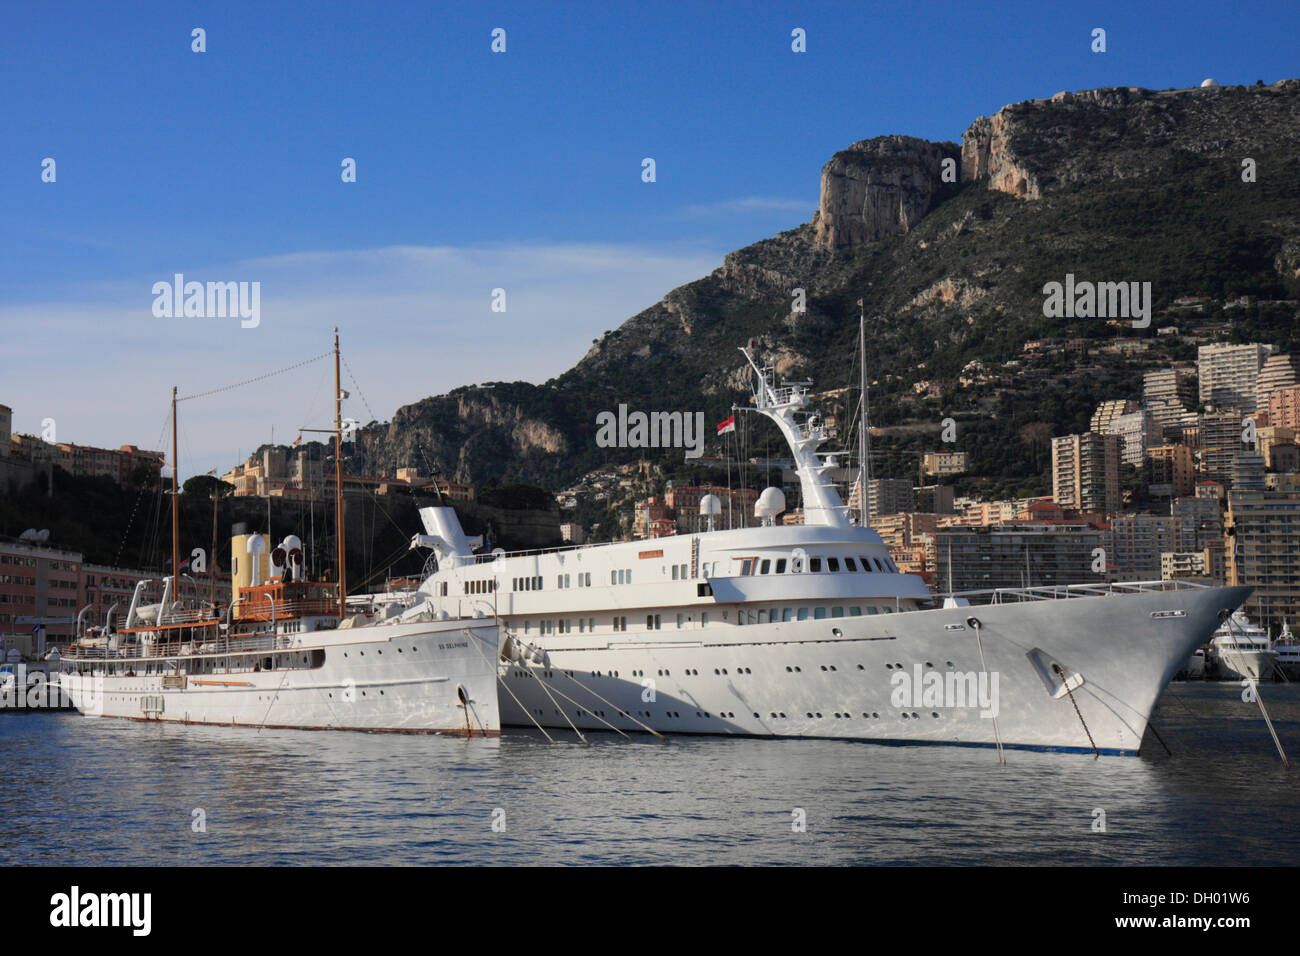 Motoryachts SS Delphine and Atlantis II in the port of La Condamine, in the back the old town with the Prince's Palace - Stock Image